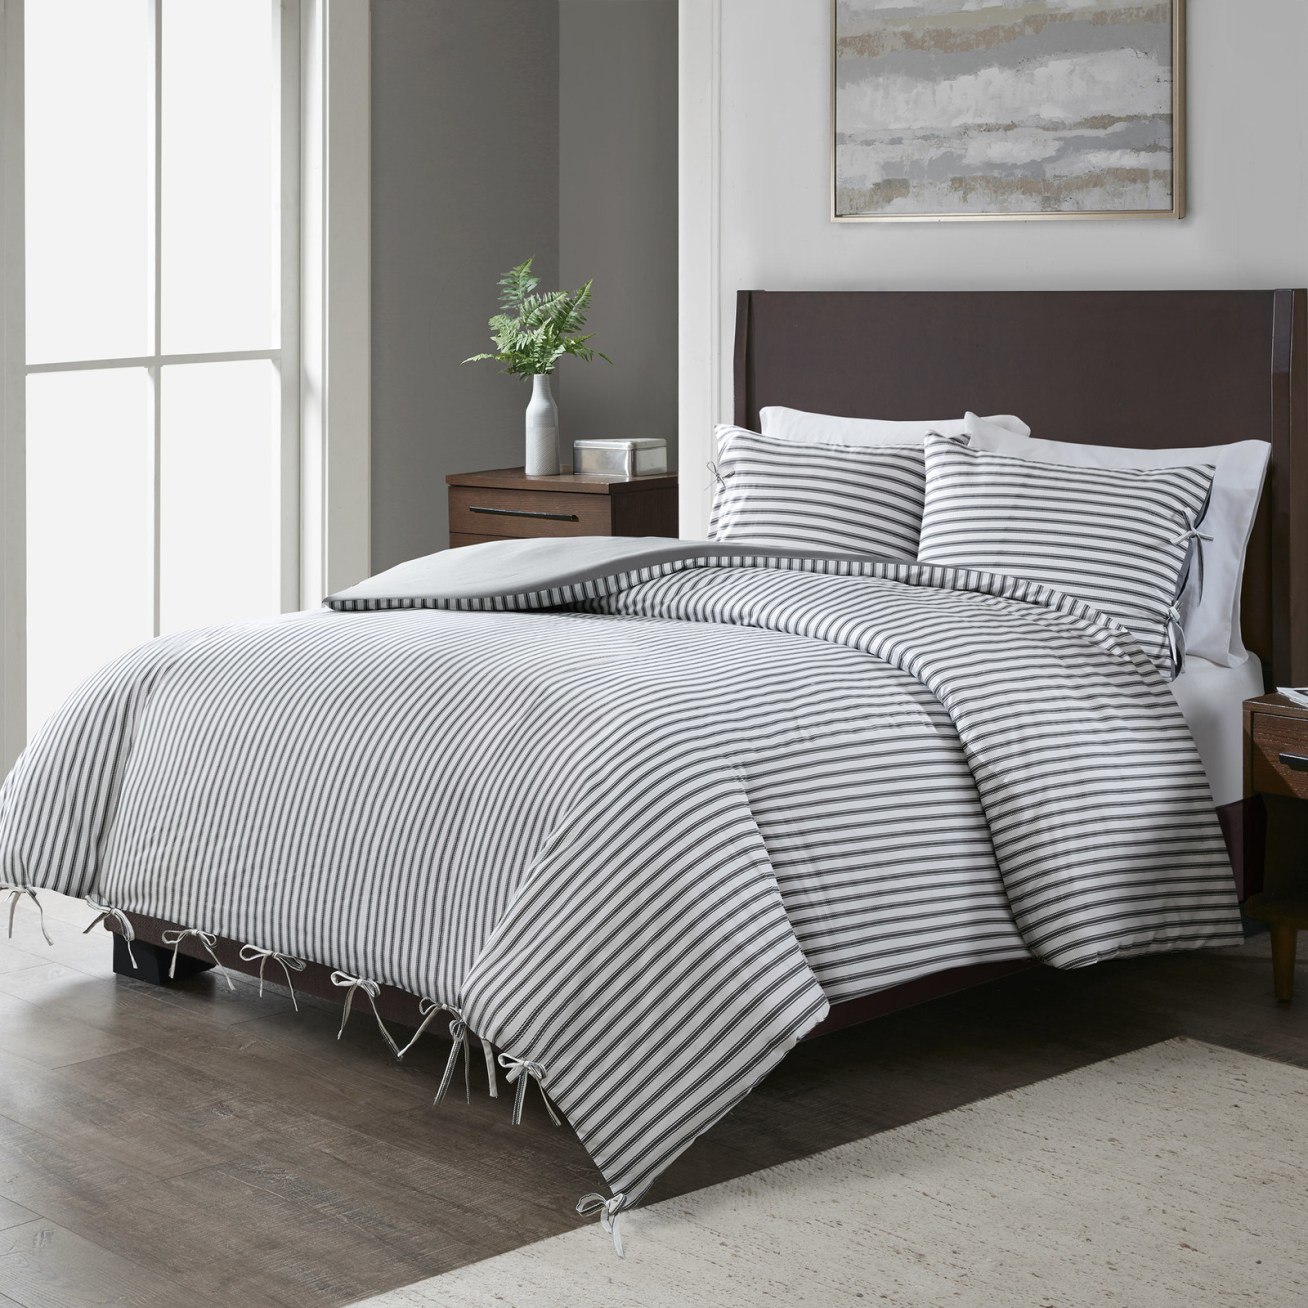 Includes one duvet cover and two shams. Price: + (available in two sizes)